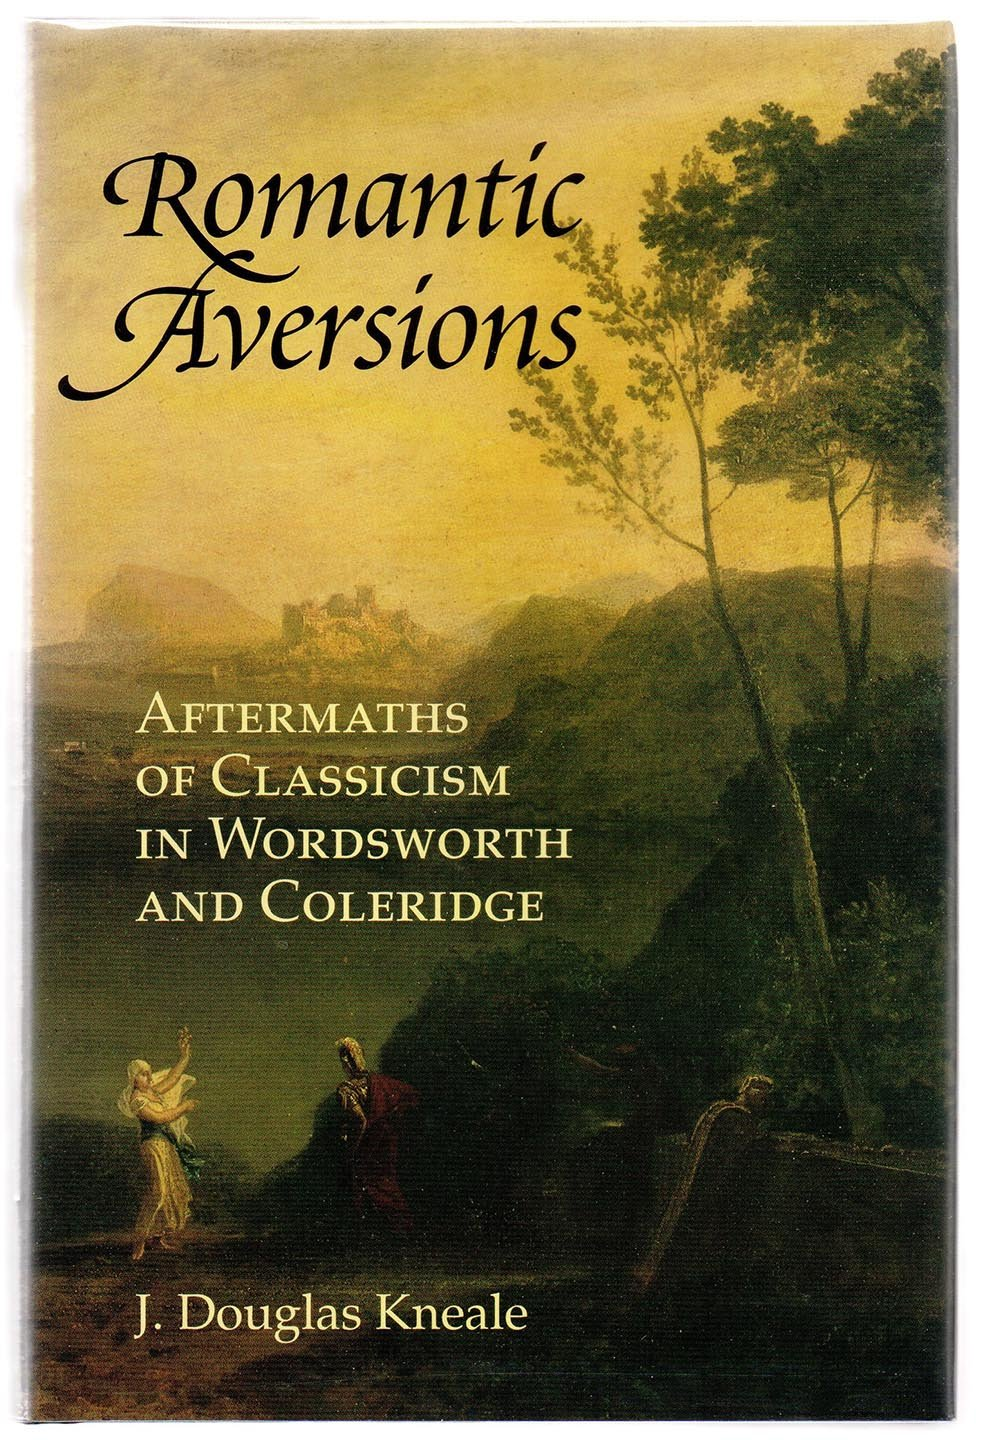 Romantic Aversions: Aftermaths of Classicism in Wordsworth and Coleridge